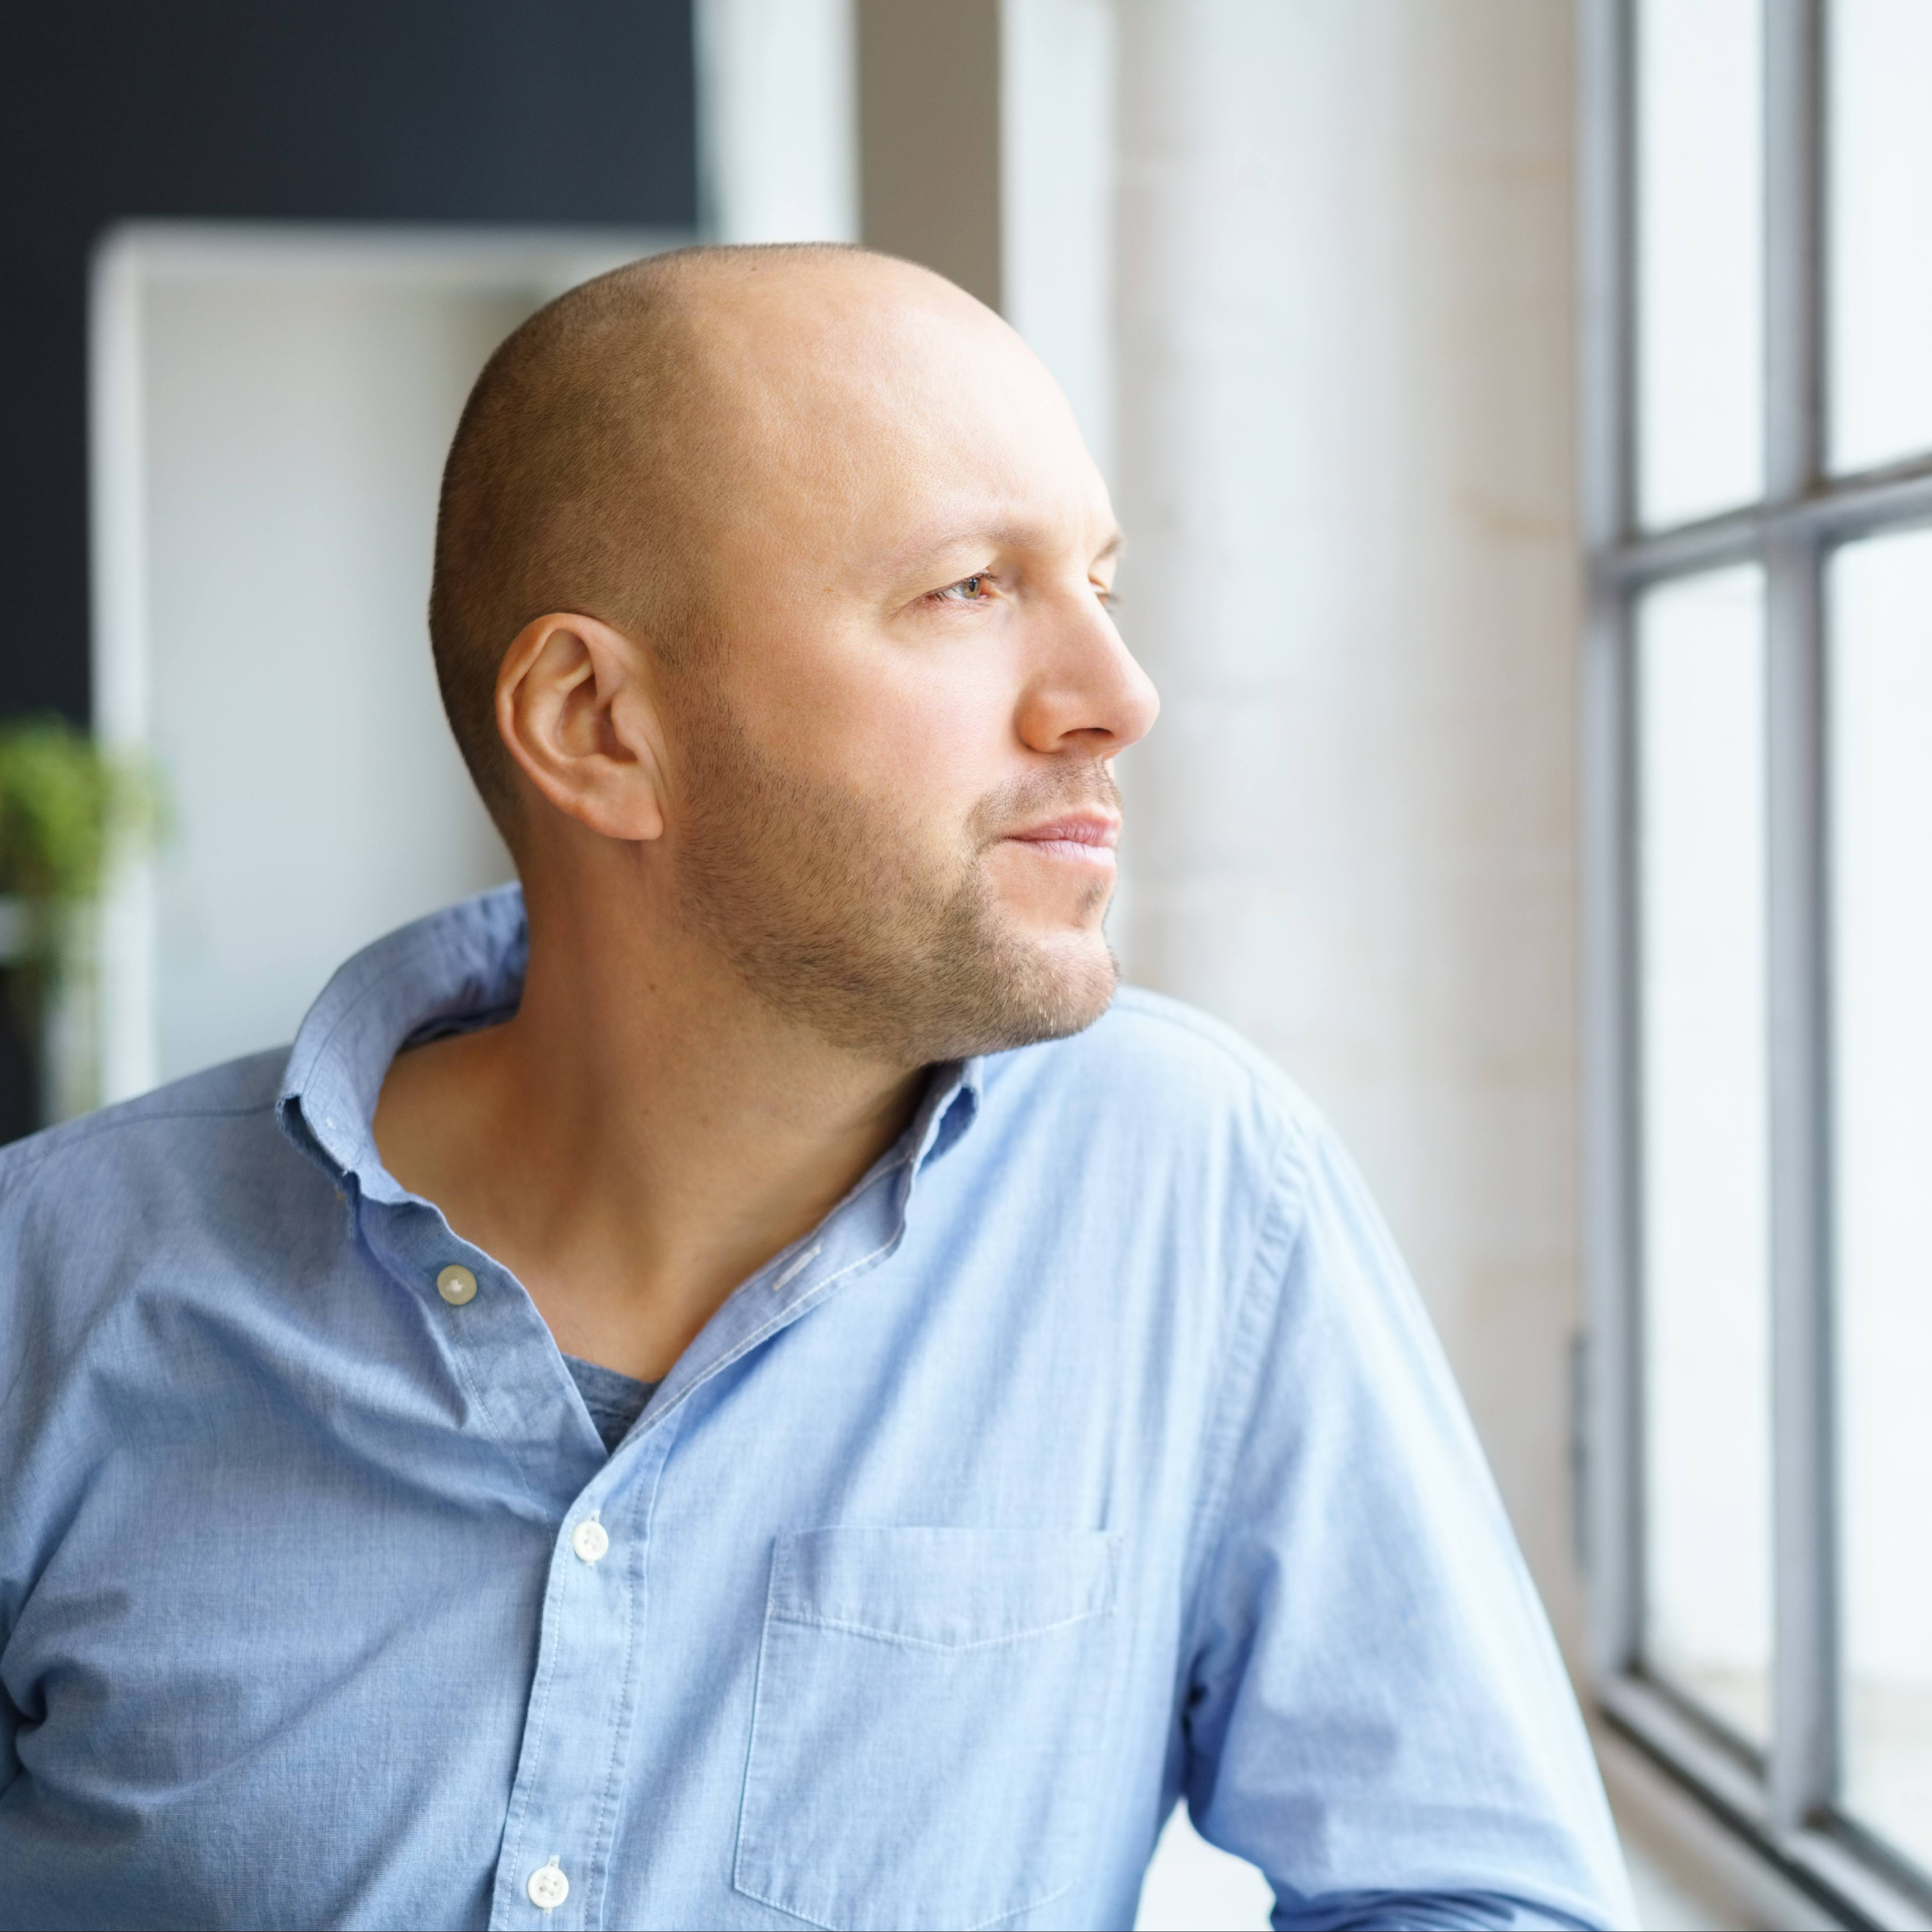 a white man in a blue shirt, looking serious, worried and thoughtful while standing at a window looking out